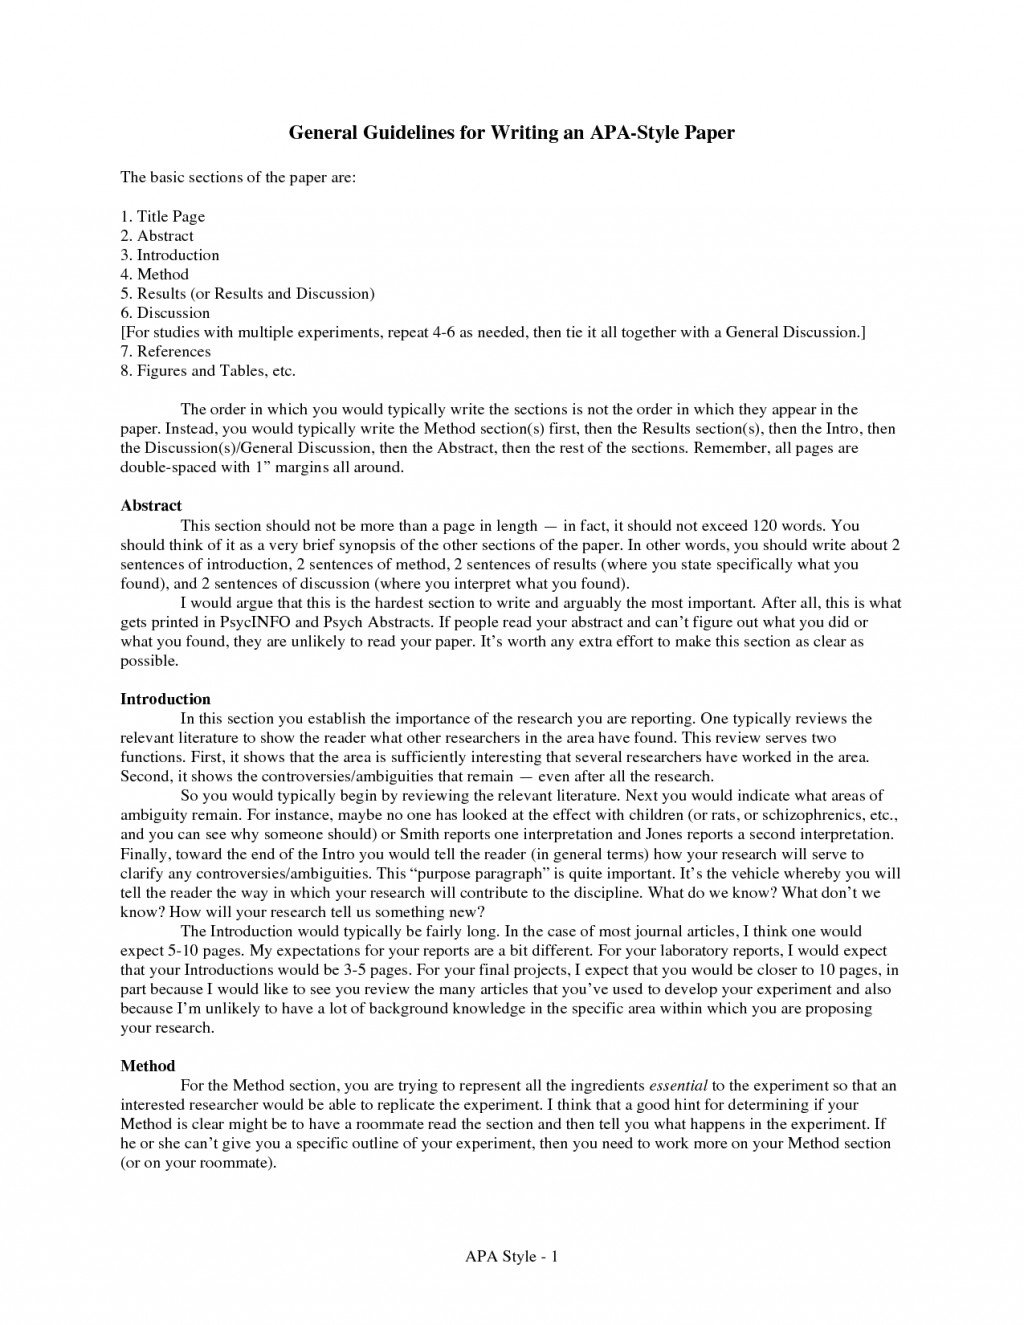 004 Research Paper Discussion Section Of Apa Sensational A Apa-style How To Write The Large